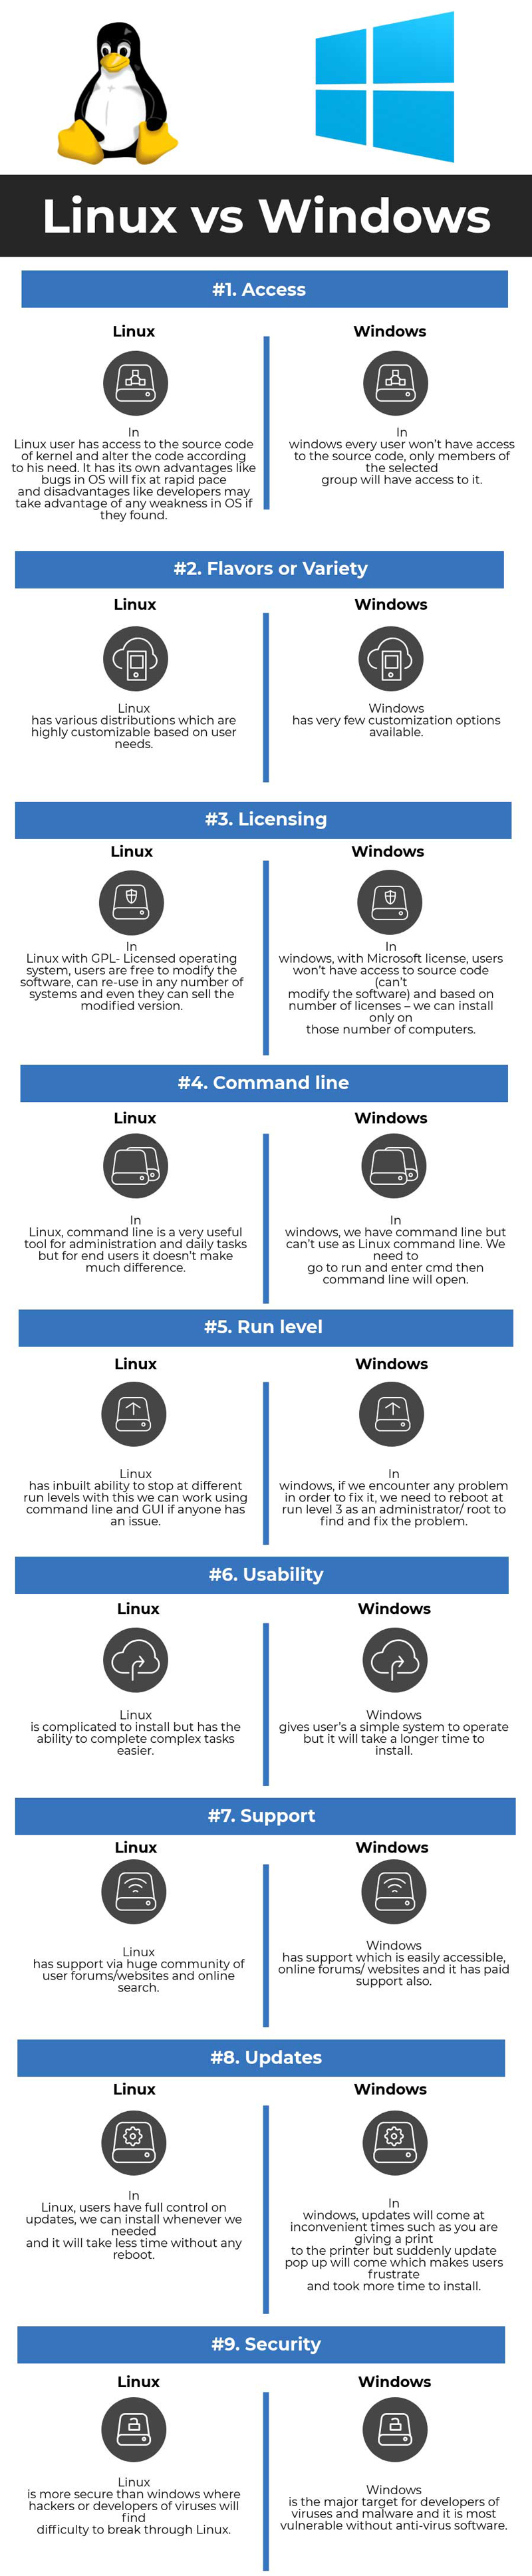 Infographic Differences between Linux and Windows